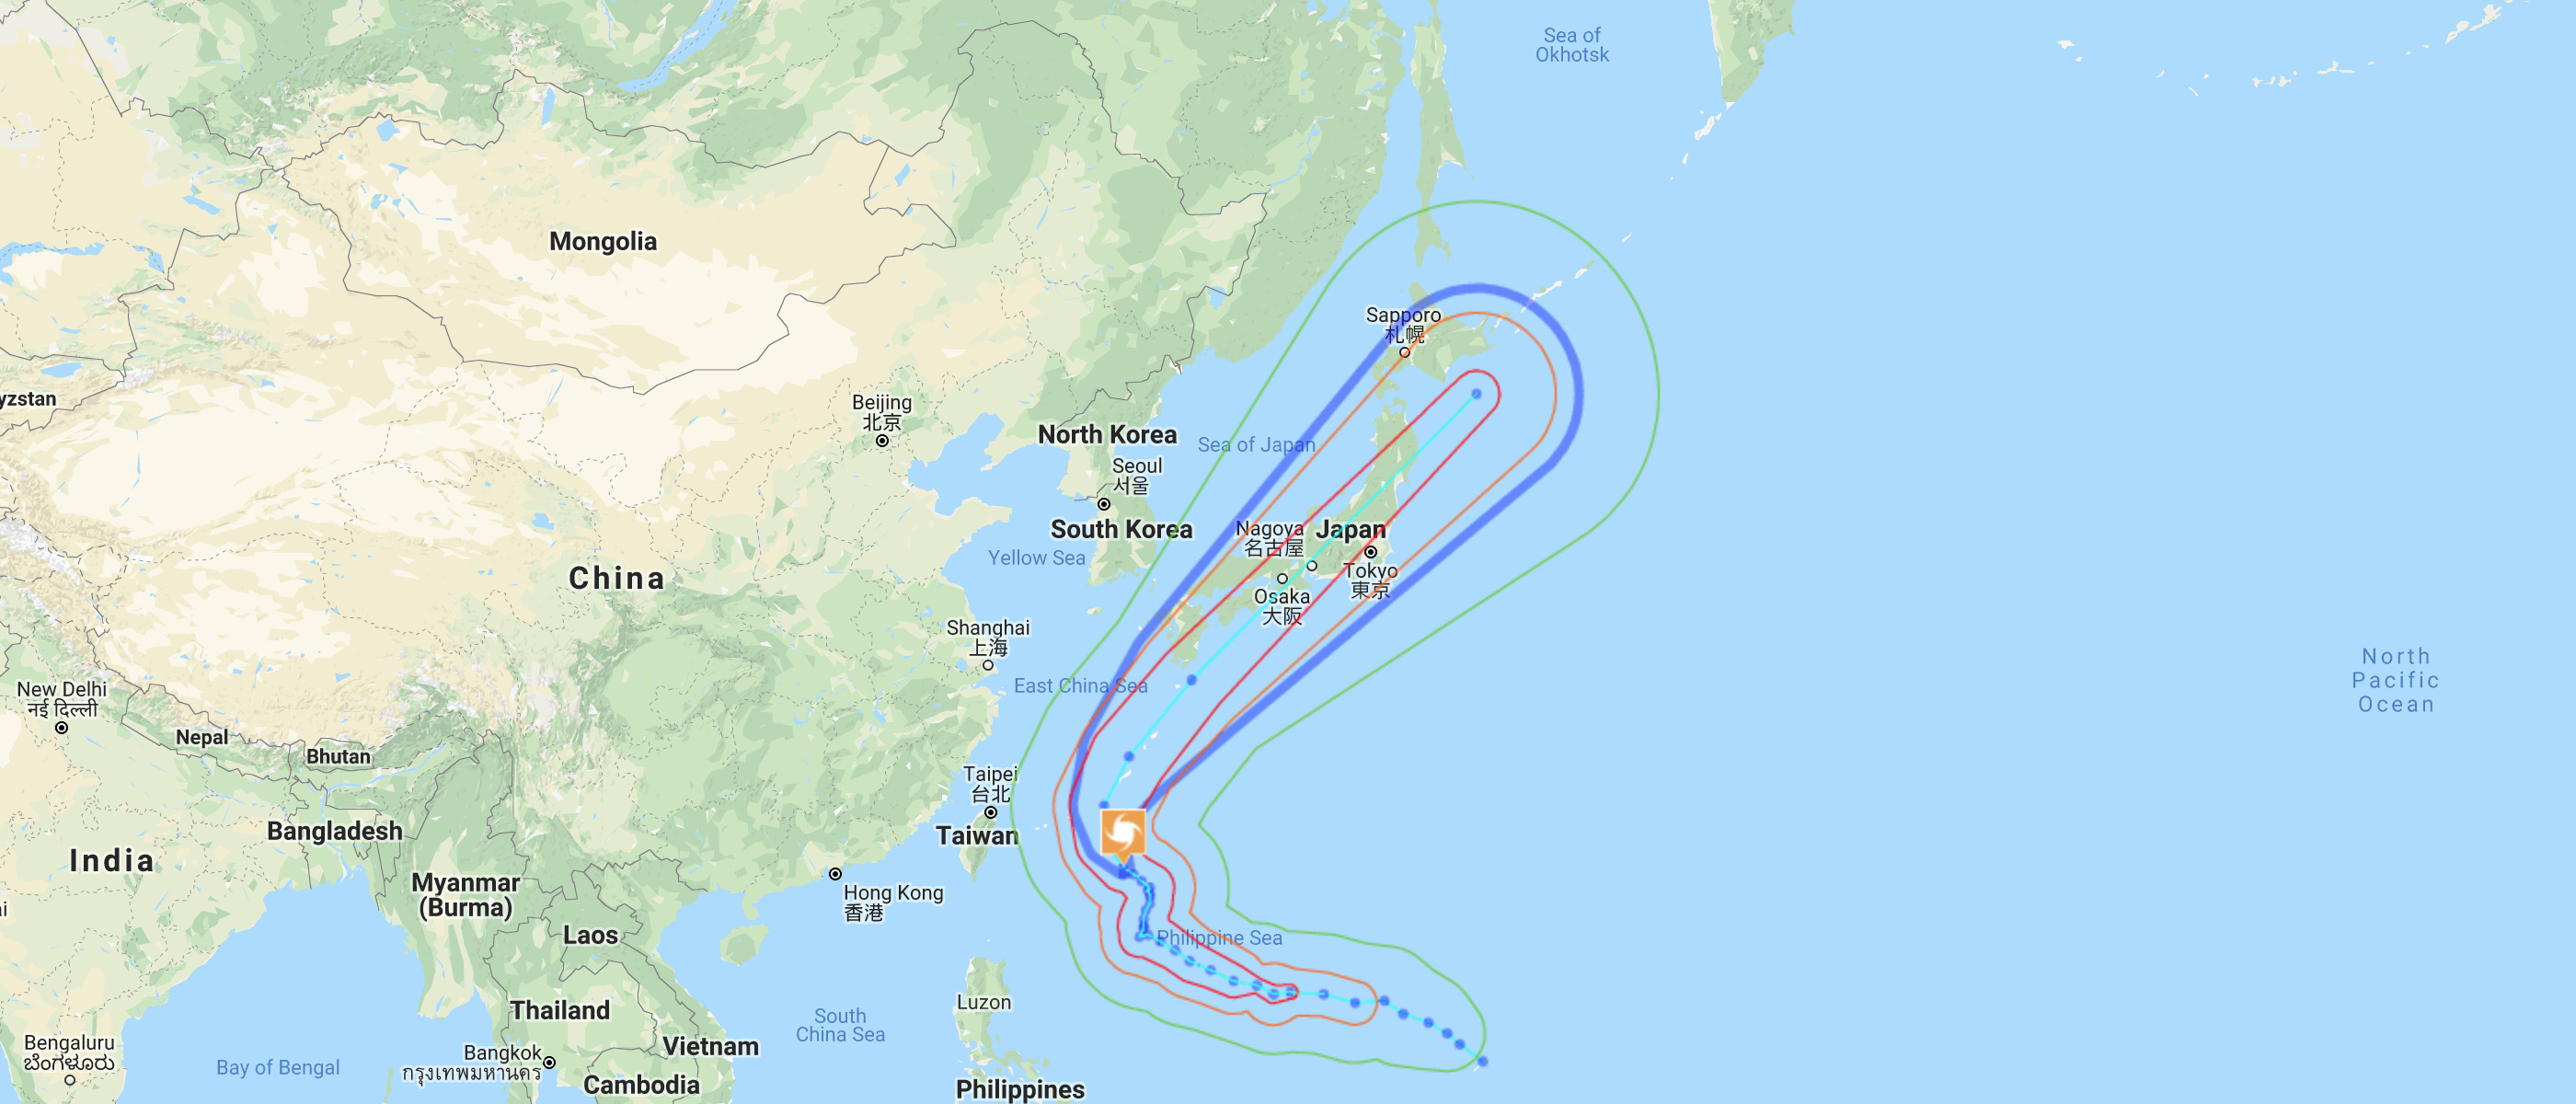 Typhoon 24's Path